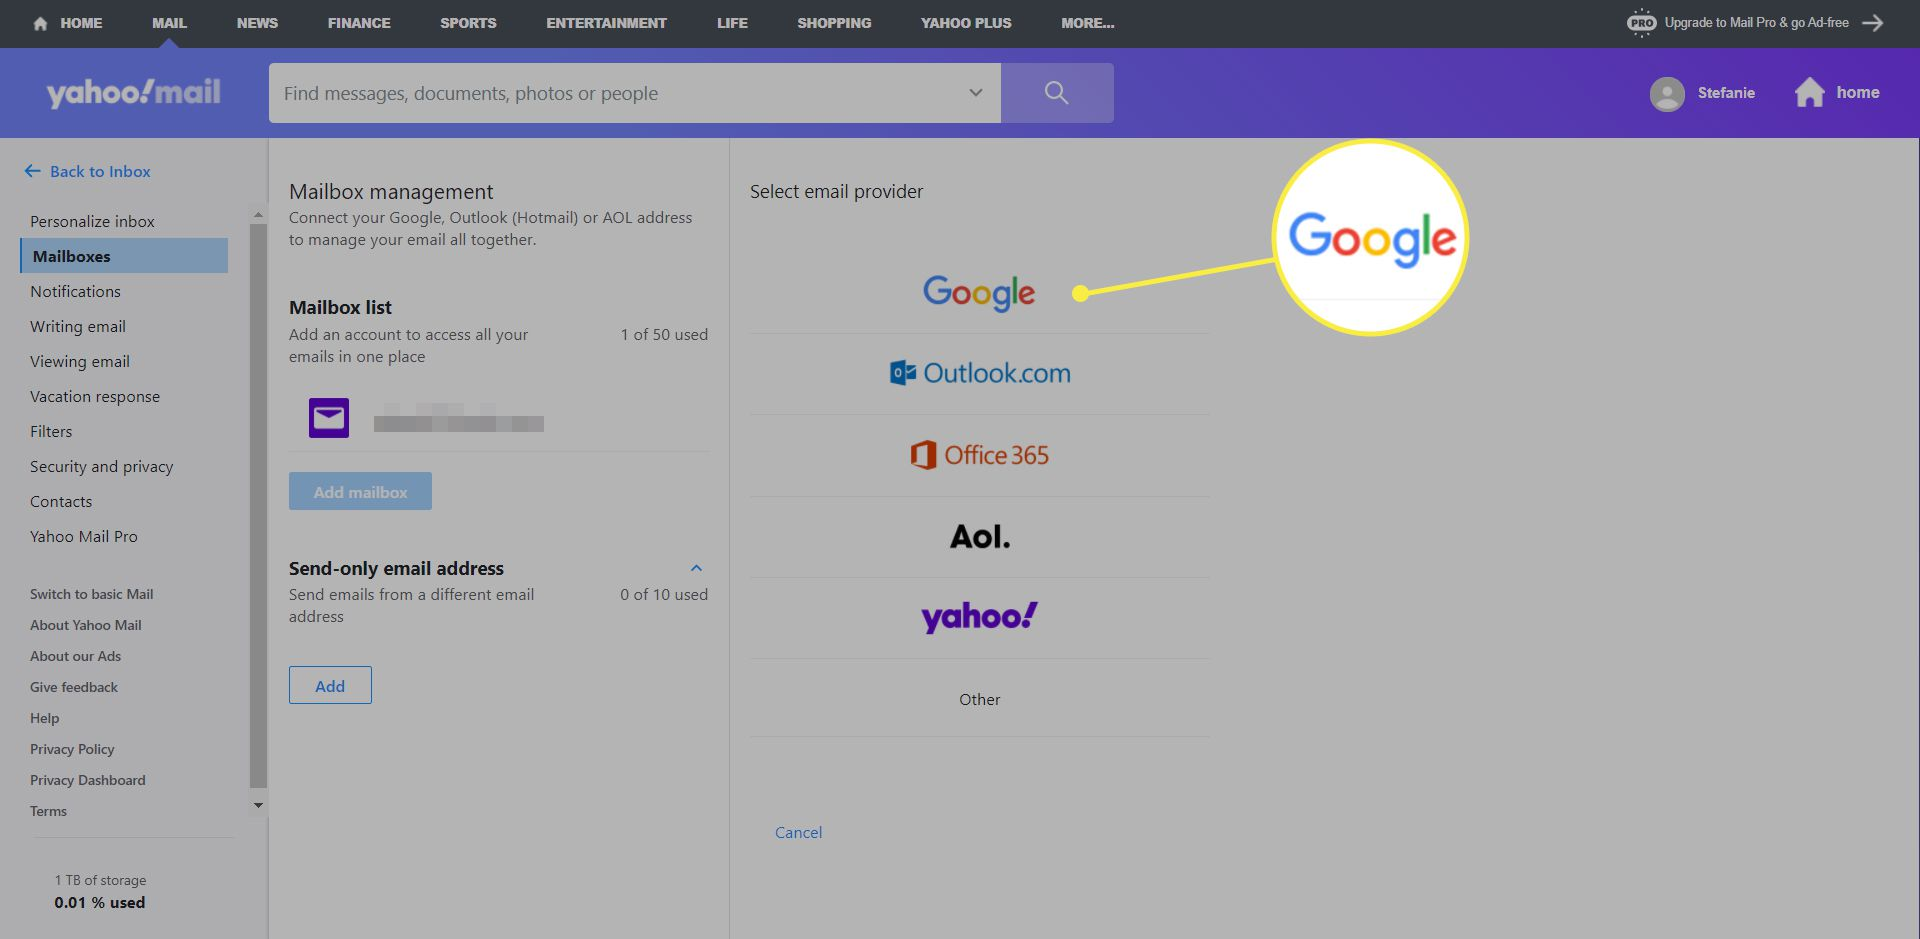 A Yahoo Mail user adds a Google mail account